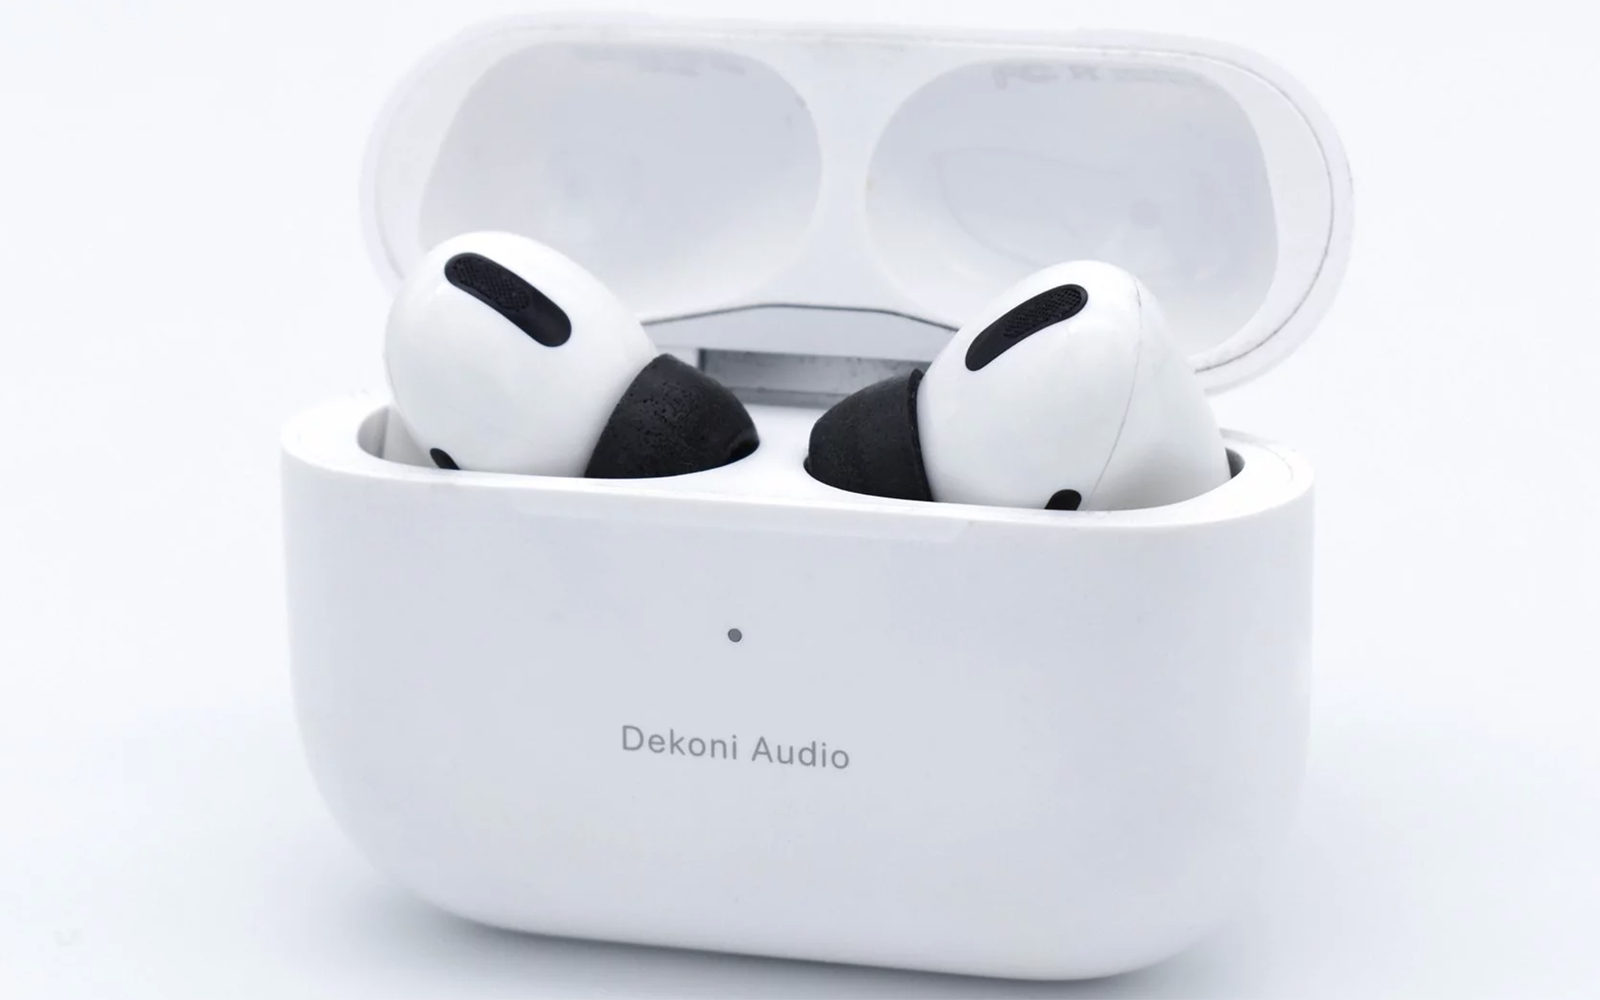 Dekoni Audio Bulletz for Apple Airpods Pro 專用耳棉